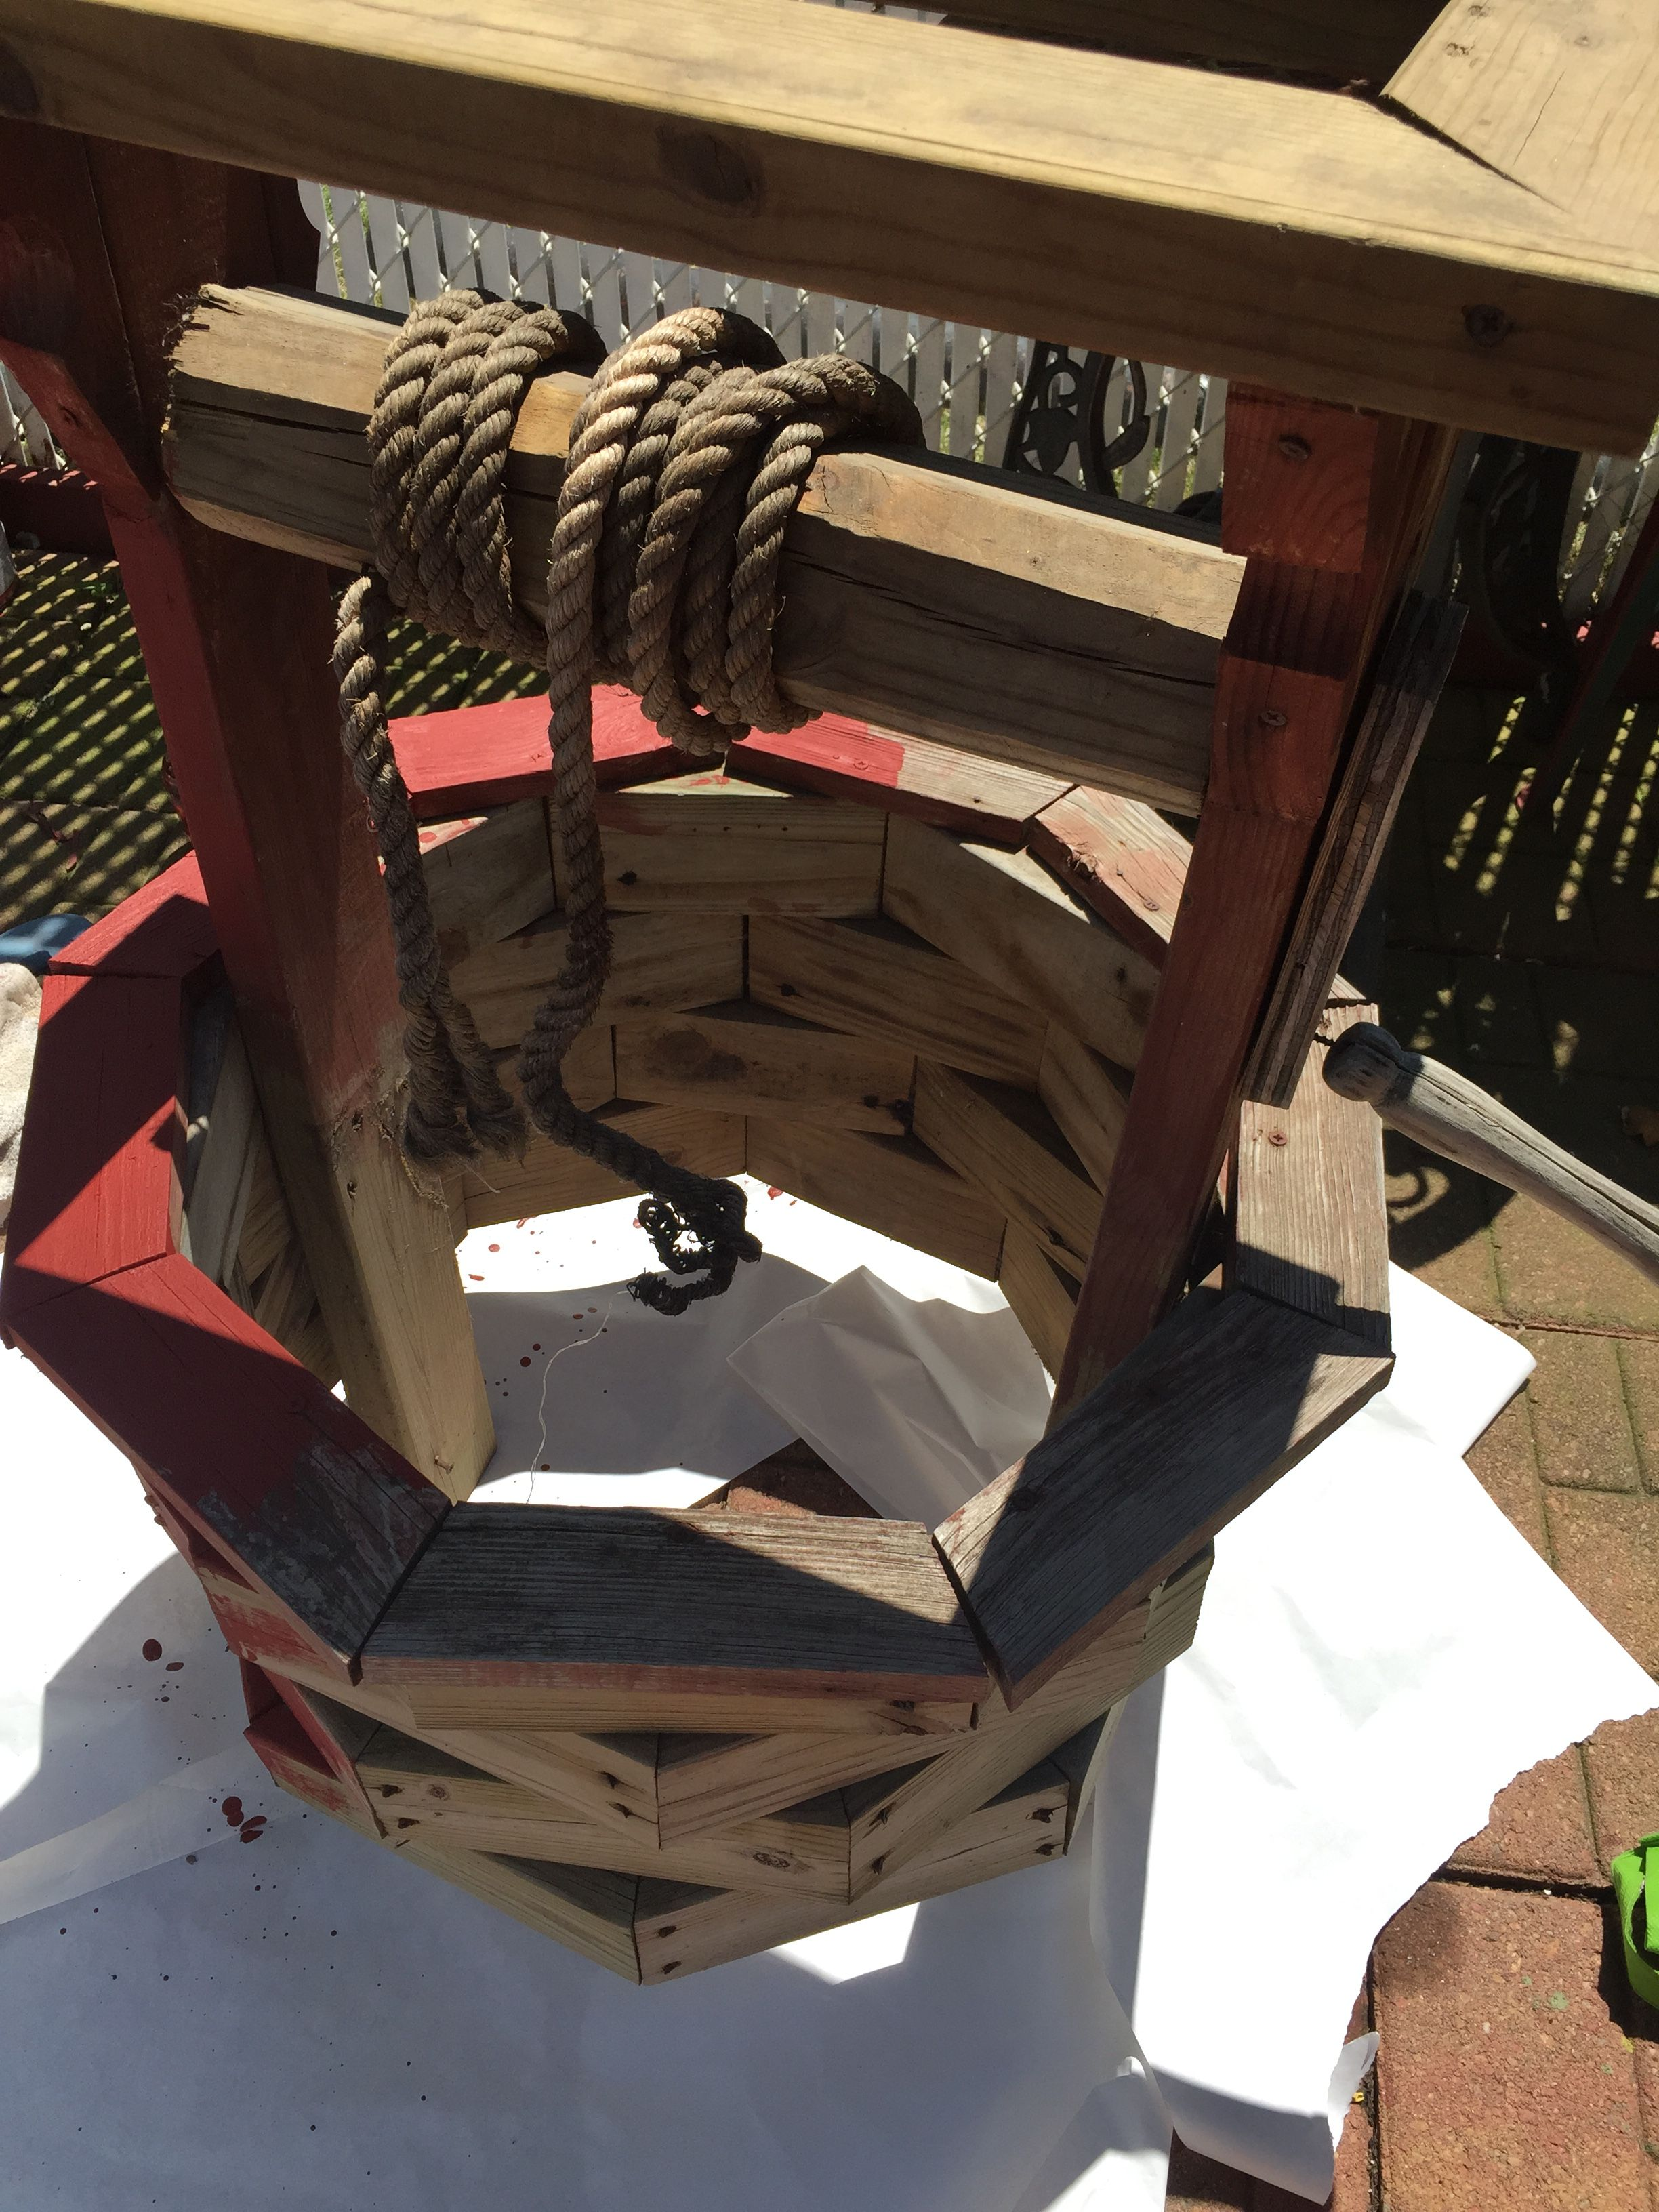 Painting my newly repaired wishing well